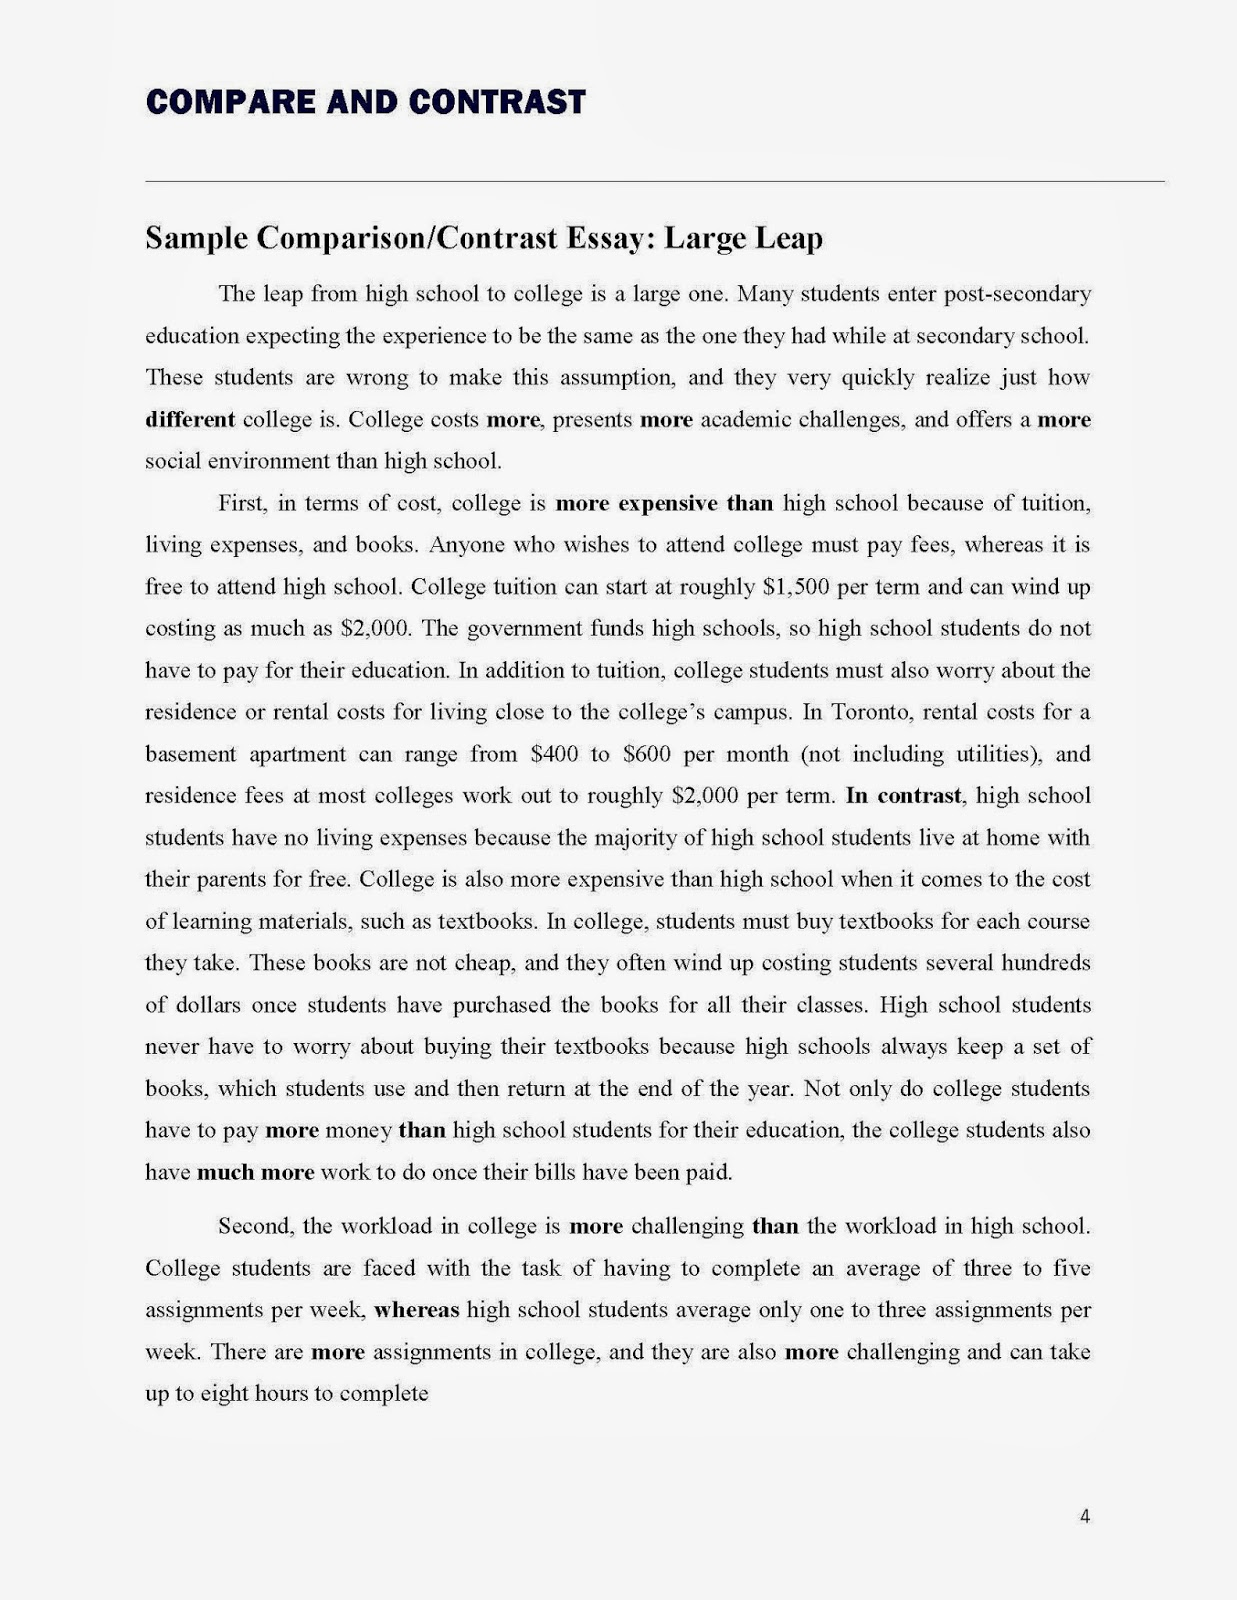 010 Ucf Essay Prompt Example Compare2band2bcontrast2bessay Page 4 Stunning Questions Prompts 2018 Full